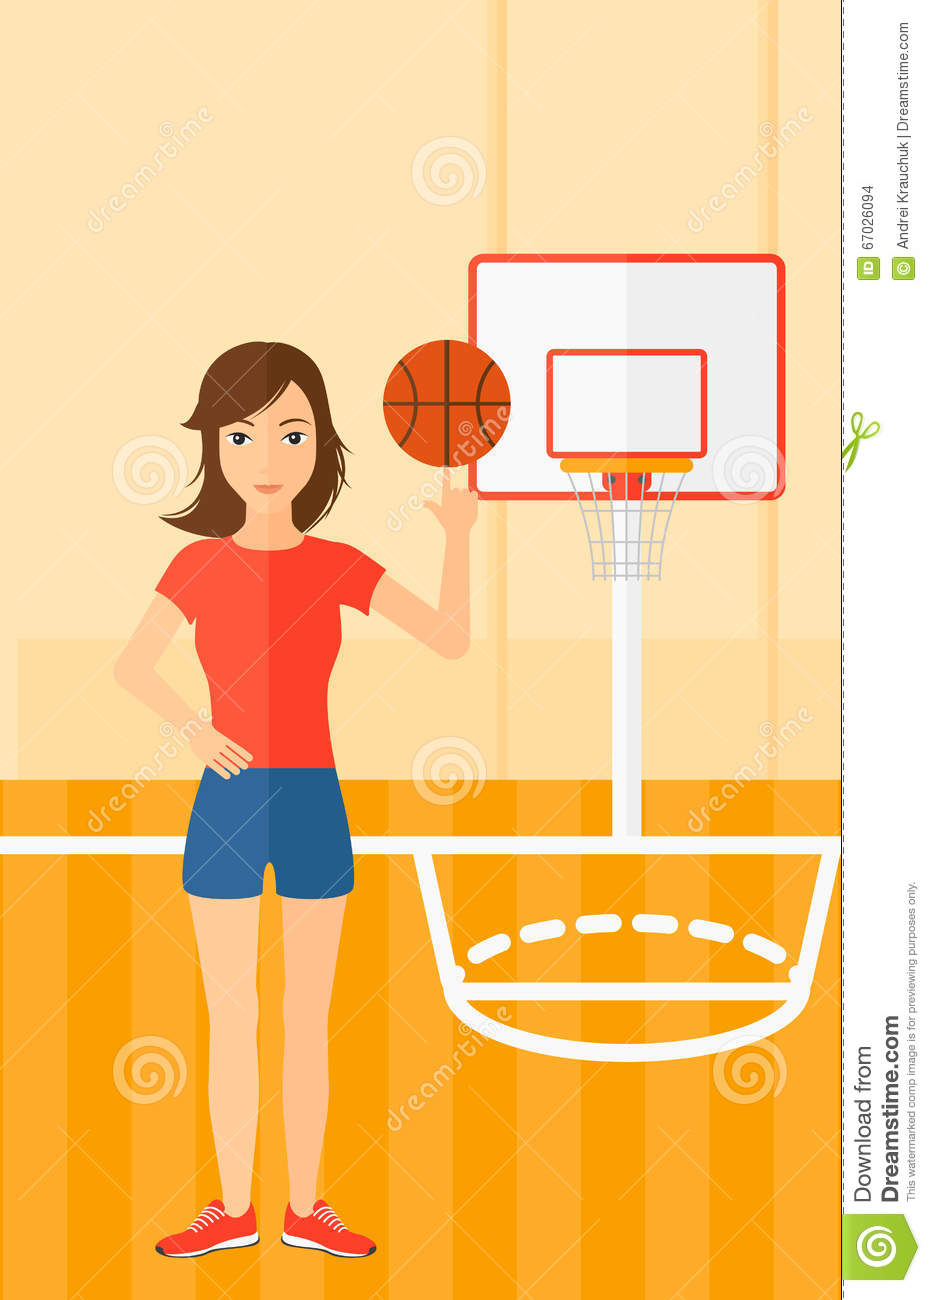 Vertical Basketball Court Stock Illustrations 83 Vertical Basketball Court Stock Illustrations Vectors Clipart Dreamstime